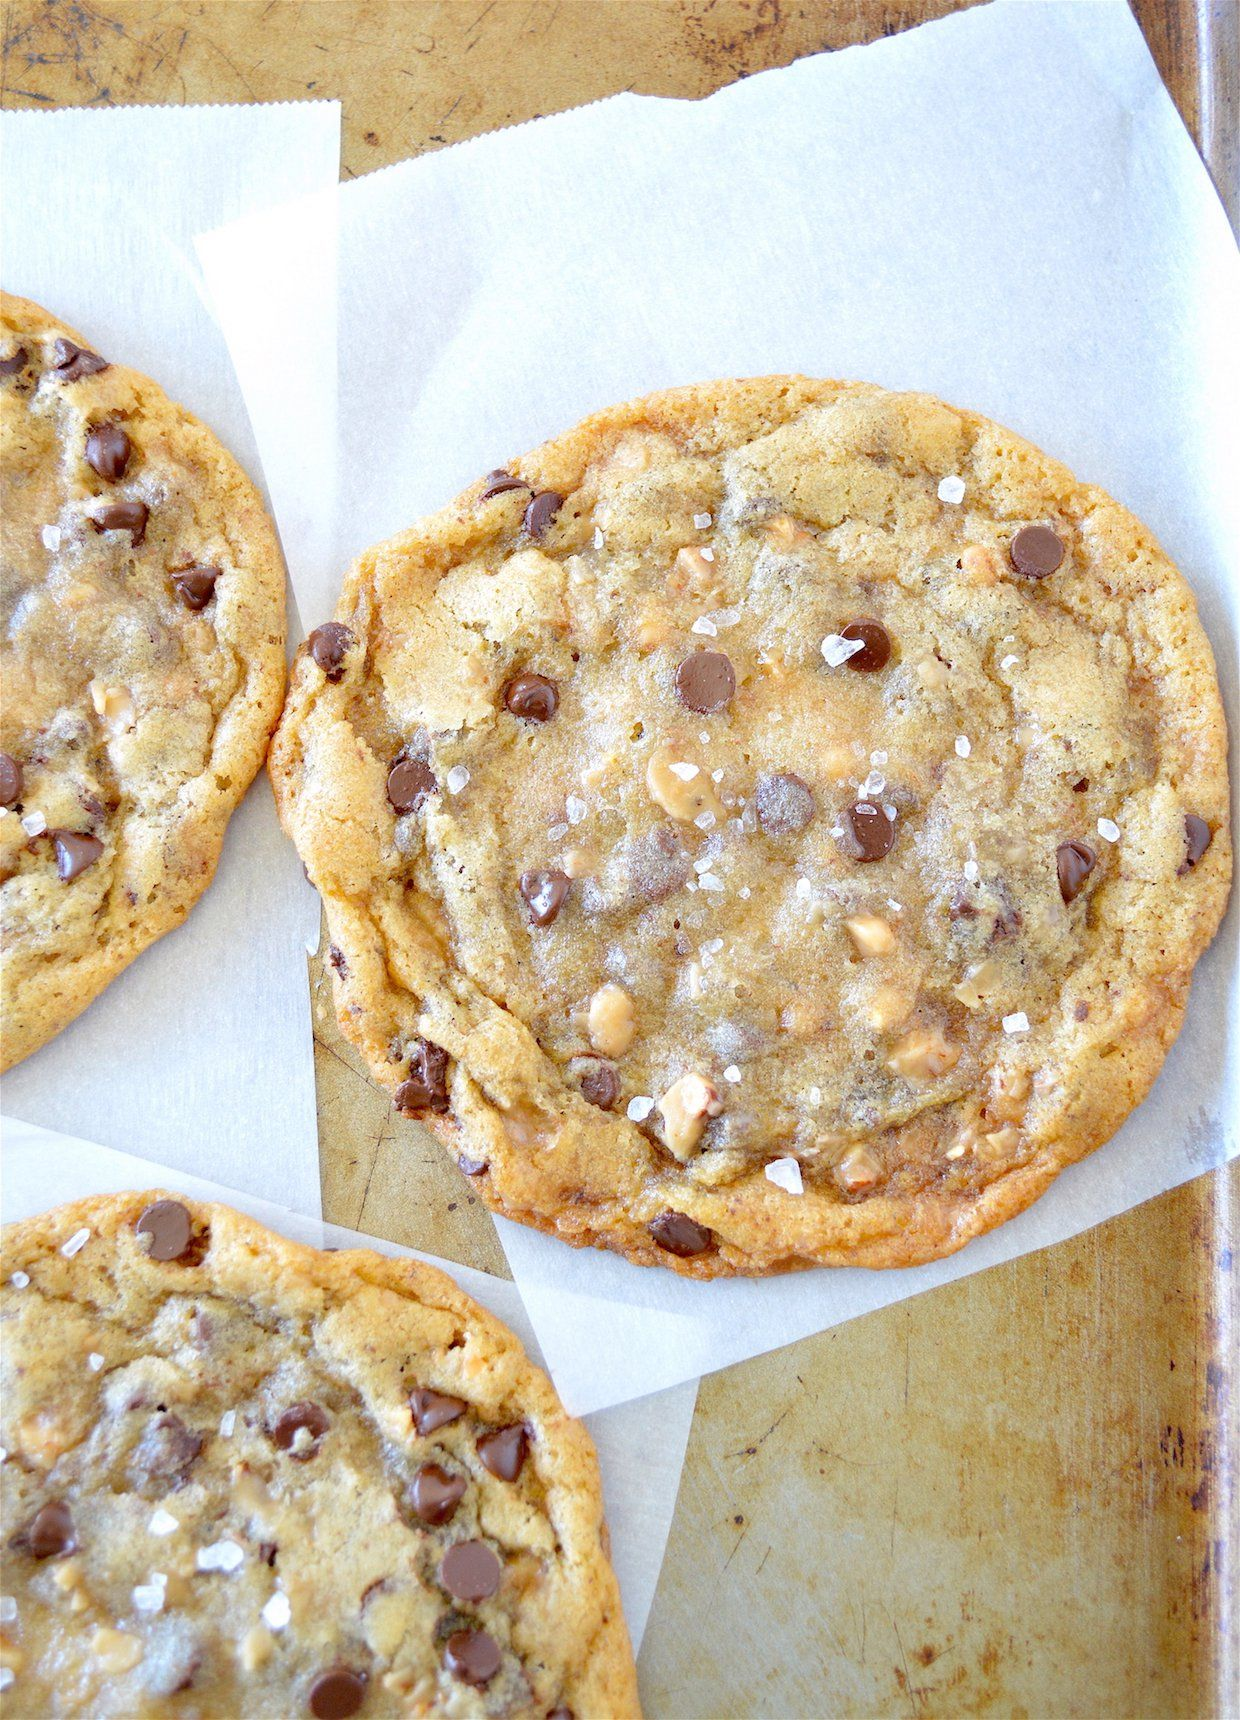 "<p>If you like your cookies nice and chewy with a complementary twist, you'll love these chewy chocolate-studded gems!  <em>Get the recipe <a href=""http://www.goodmorningcali.com/chewy-salted-toffee-chocolate-chip-cookies/"" target=""_blank"">HERE</a>!</em></p>"